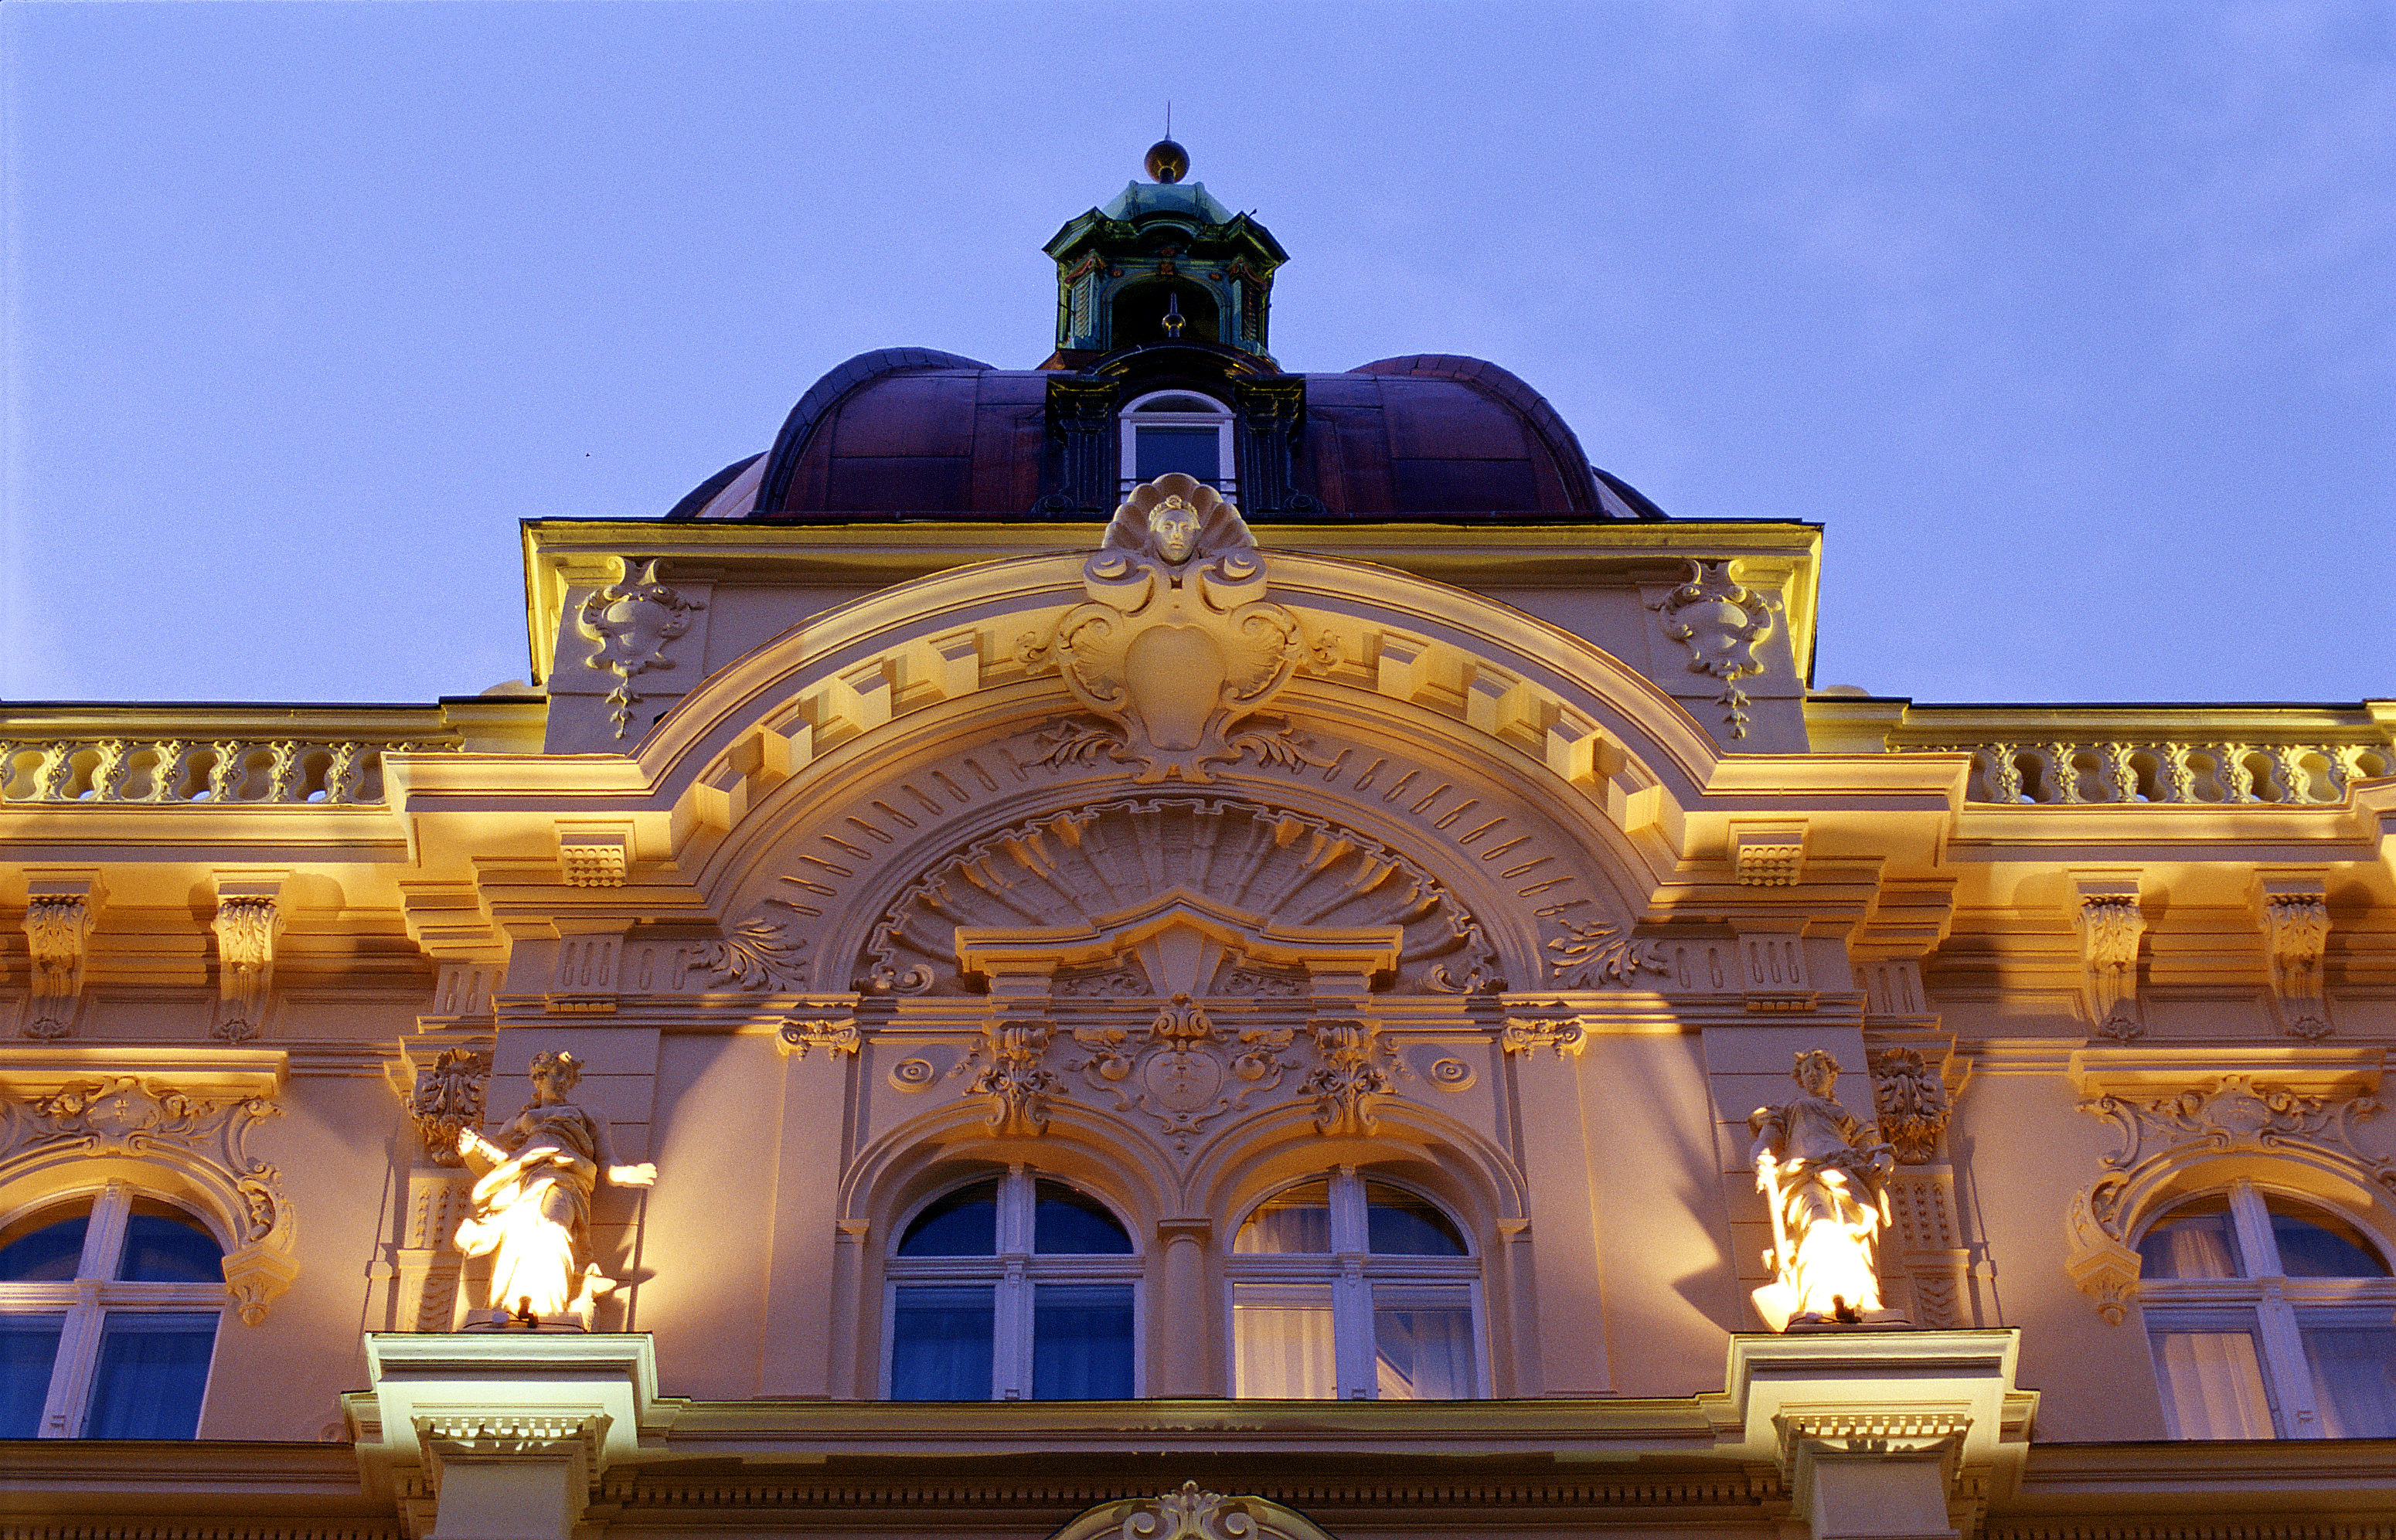 Century Old Town Mgallery by Sofitel,Prague Central Station